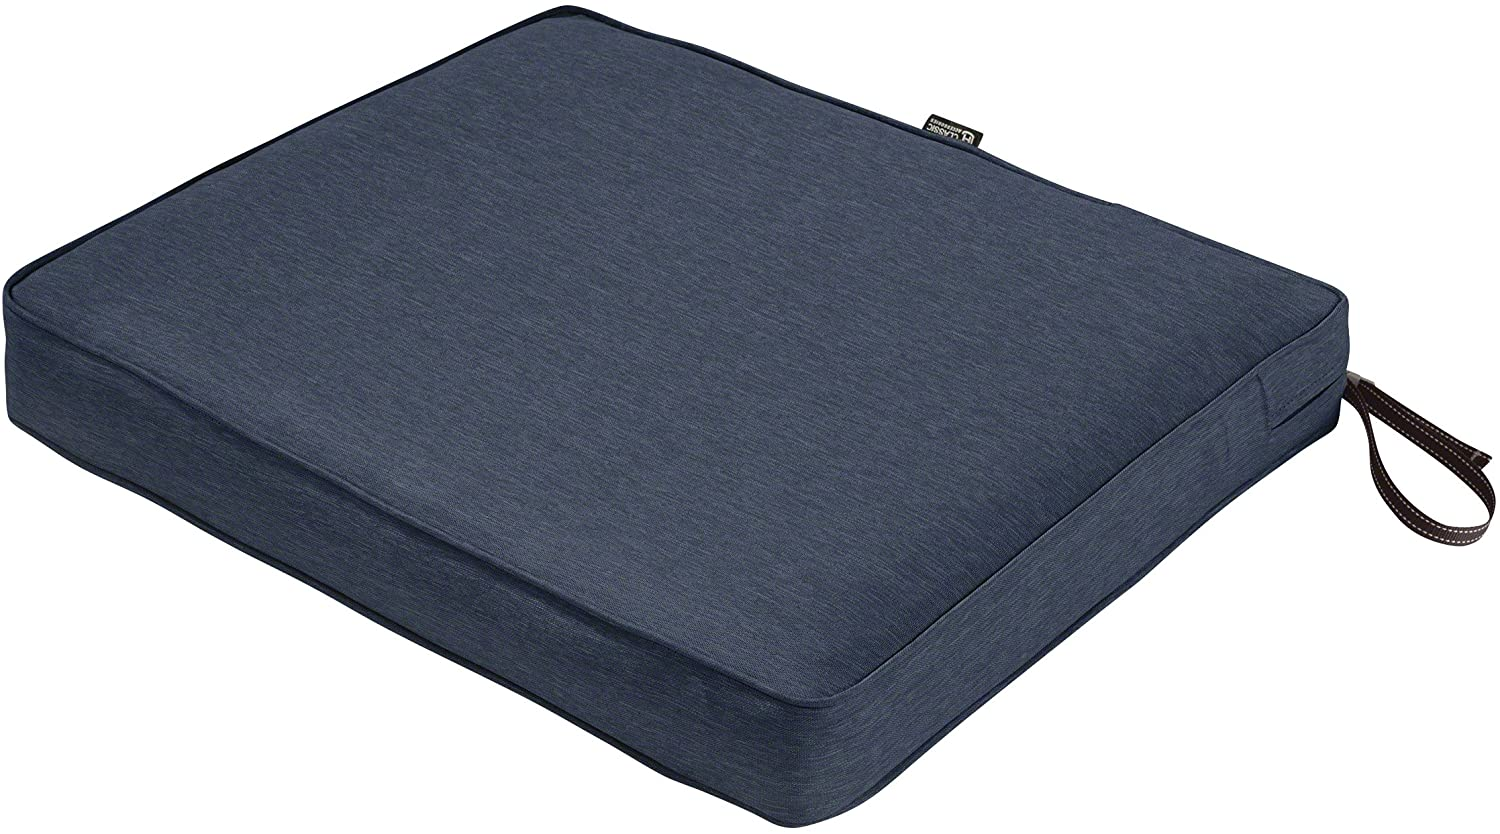 Classic Accessories Montlake Water-Resistant 21 x 19 x 3 Inch Rectangle Outdoor Seat Cushion, Patio Furniture Chair Cushion, Heather Indigo Blue